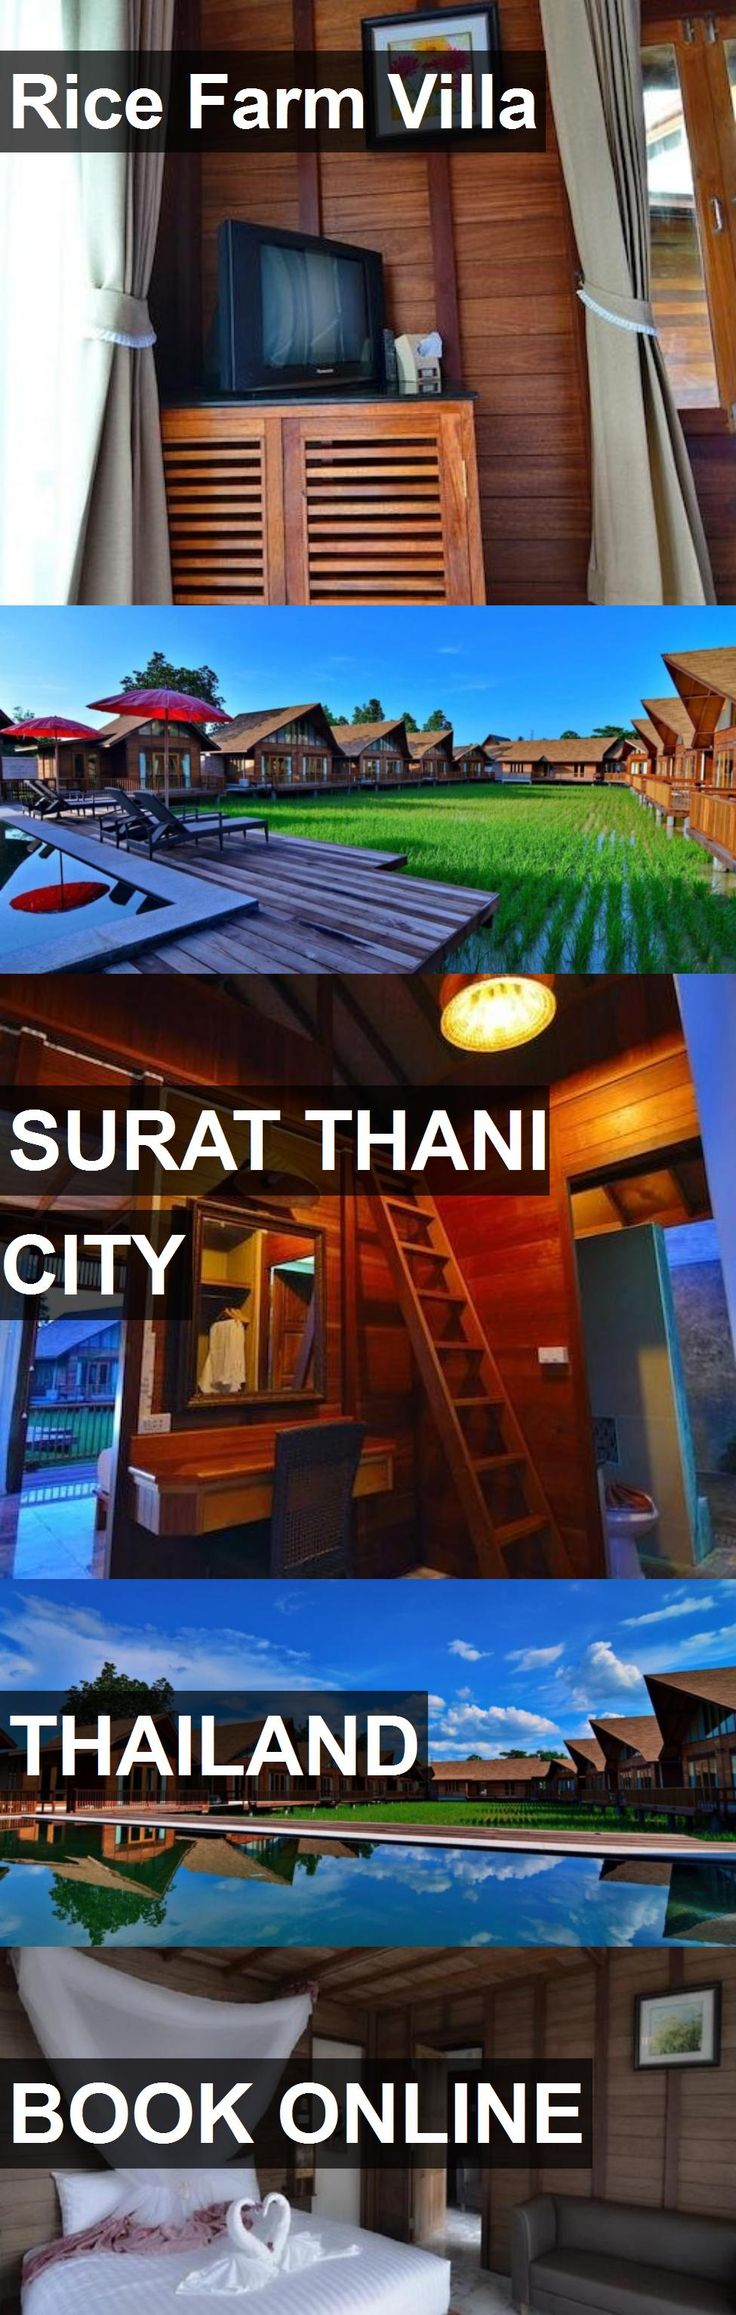 Hotel Rice Farm Villa in Surat Thani City, Thailand. For more information, photos, reviews and best prices please follow the link. #Thailand #SuratThaniCity #RiceFarmVilla #hotel #travel #vacation